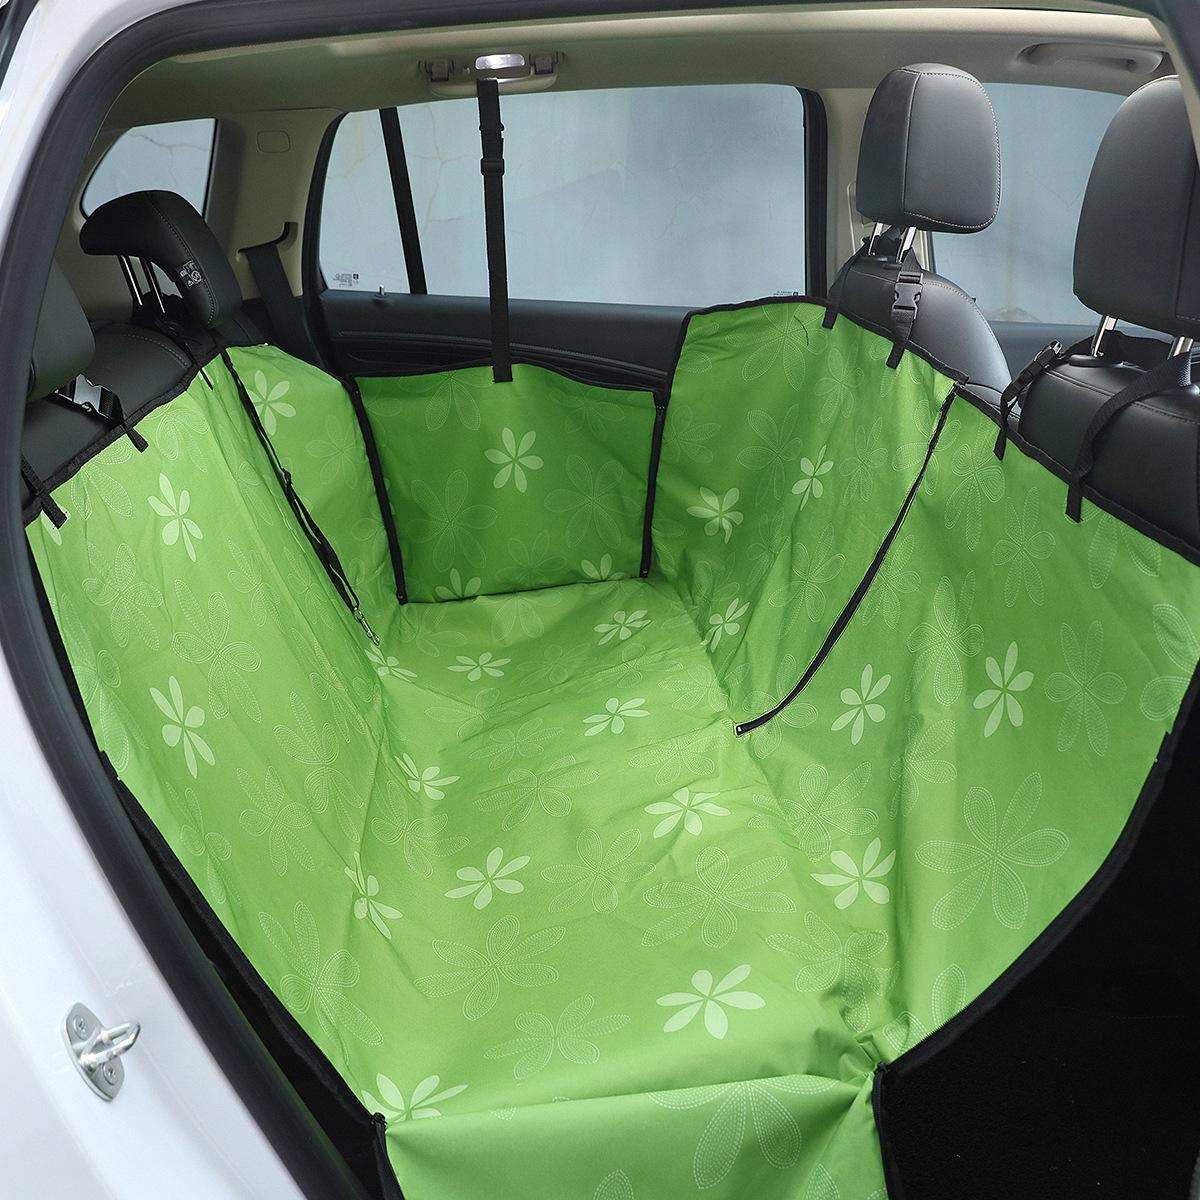 Interior Accessories Seat Supports 1pc Car Styling Pet Dog Cats Car Front Seat Cover Mat Waterproof Hammock Style And Back Cover For Pet Dog Accessories